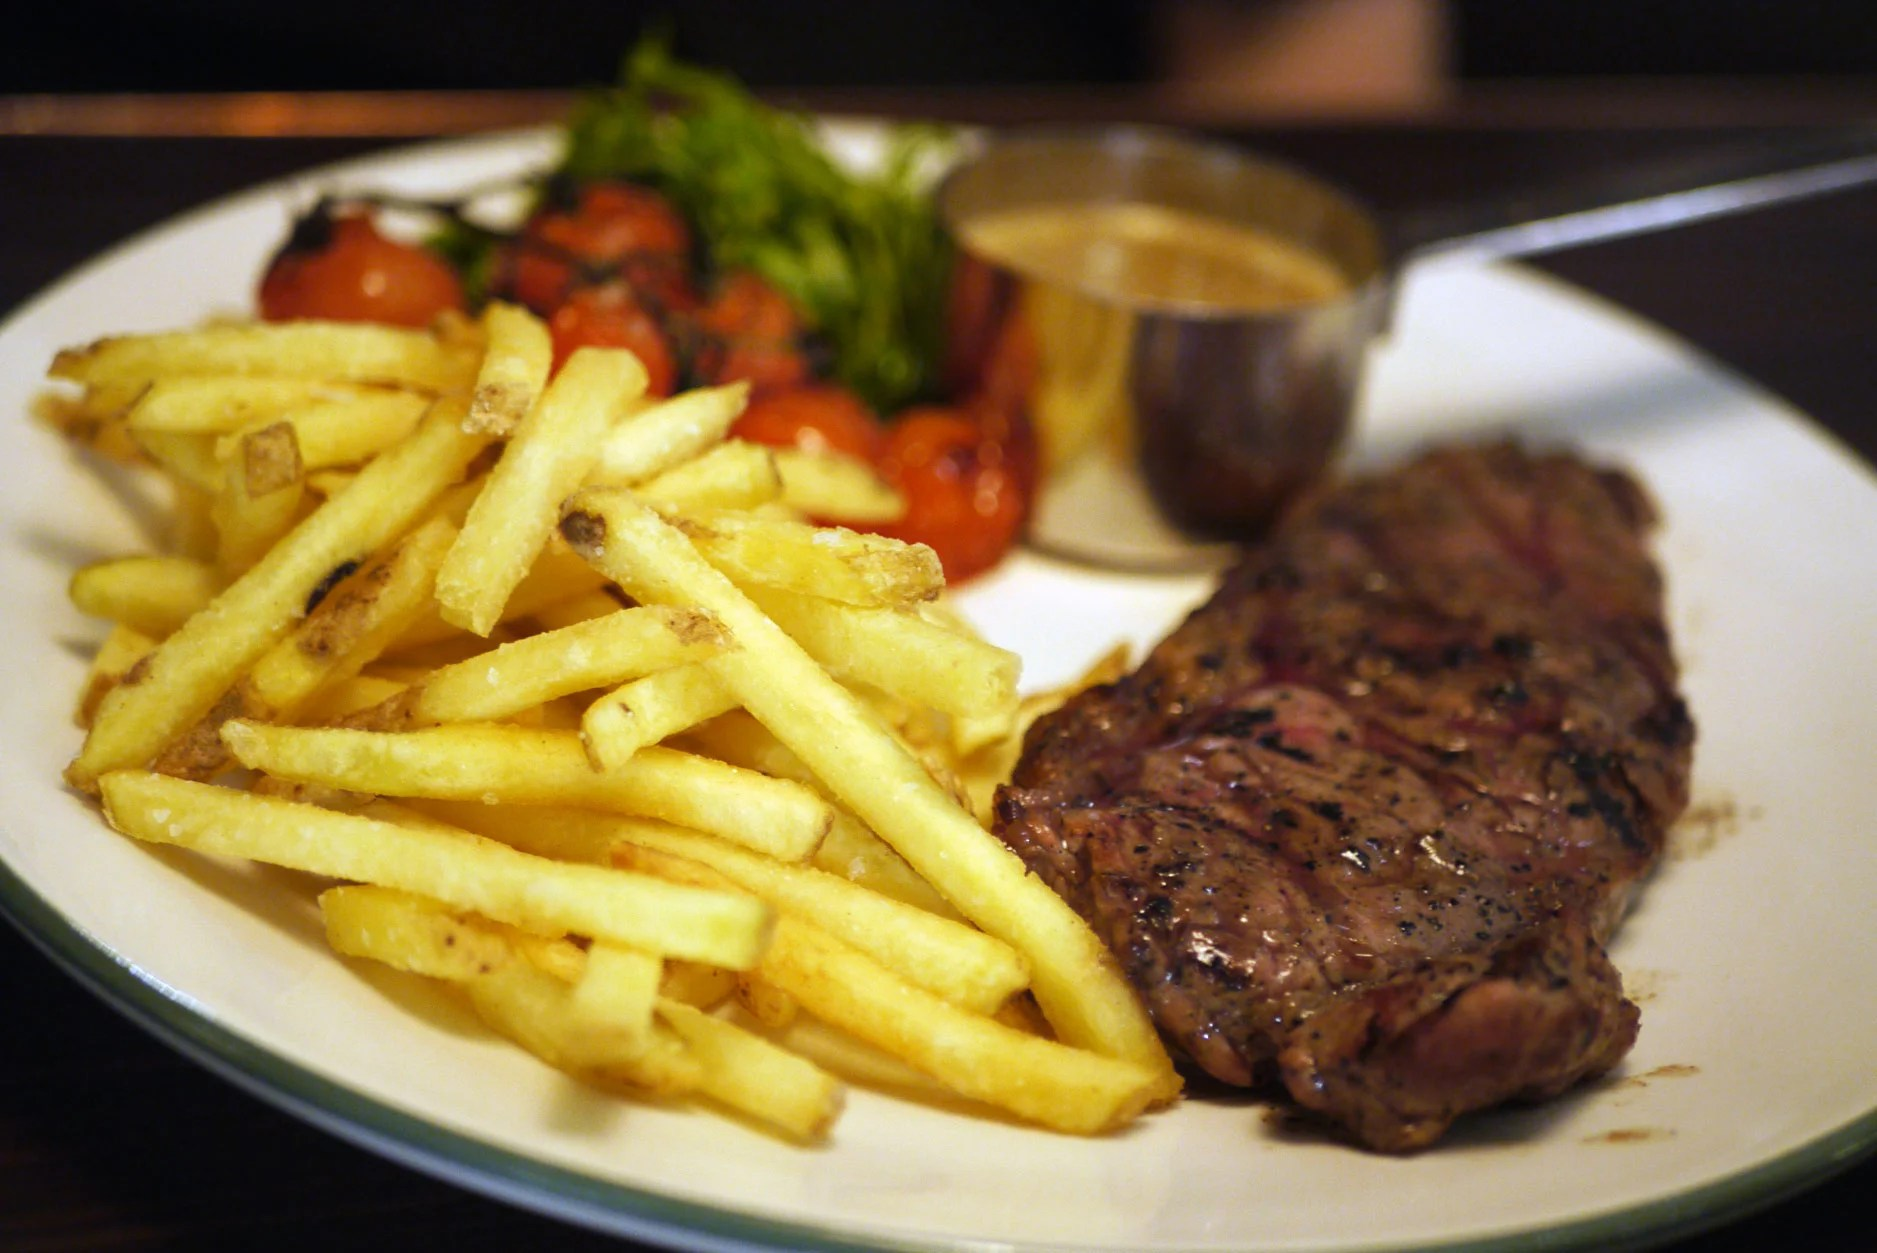 8oz Sirloin Steak, £18